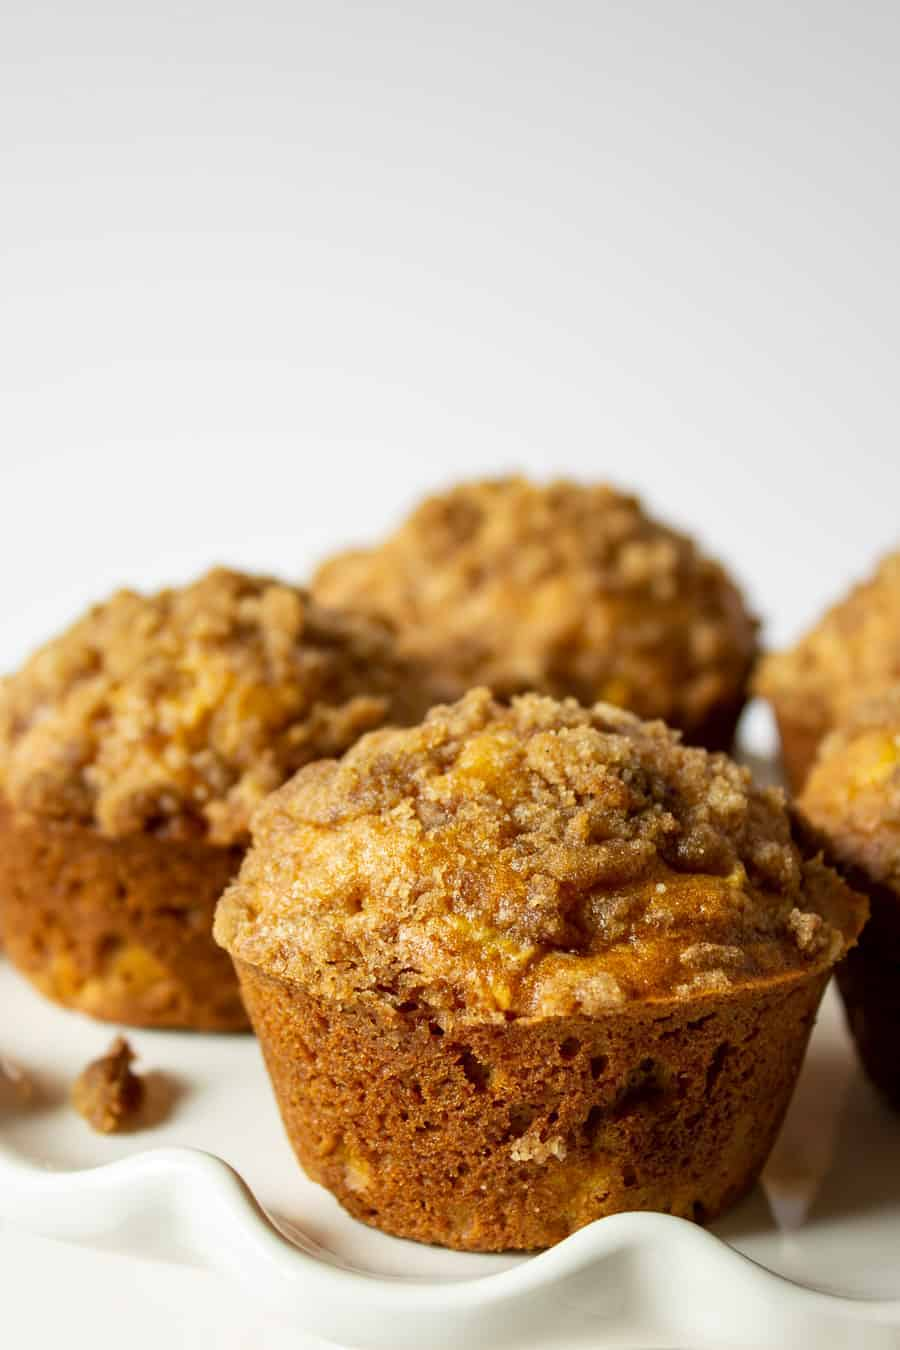 Pumpkin apple muffins on a white plate.